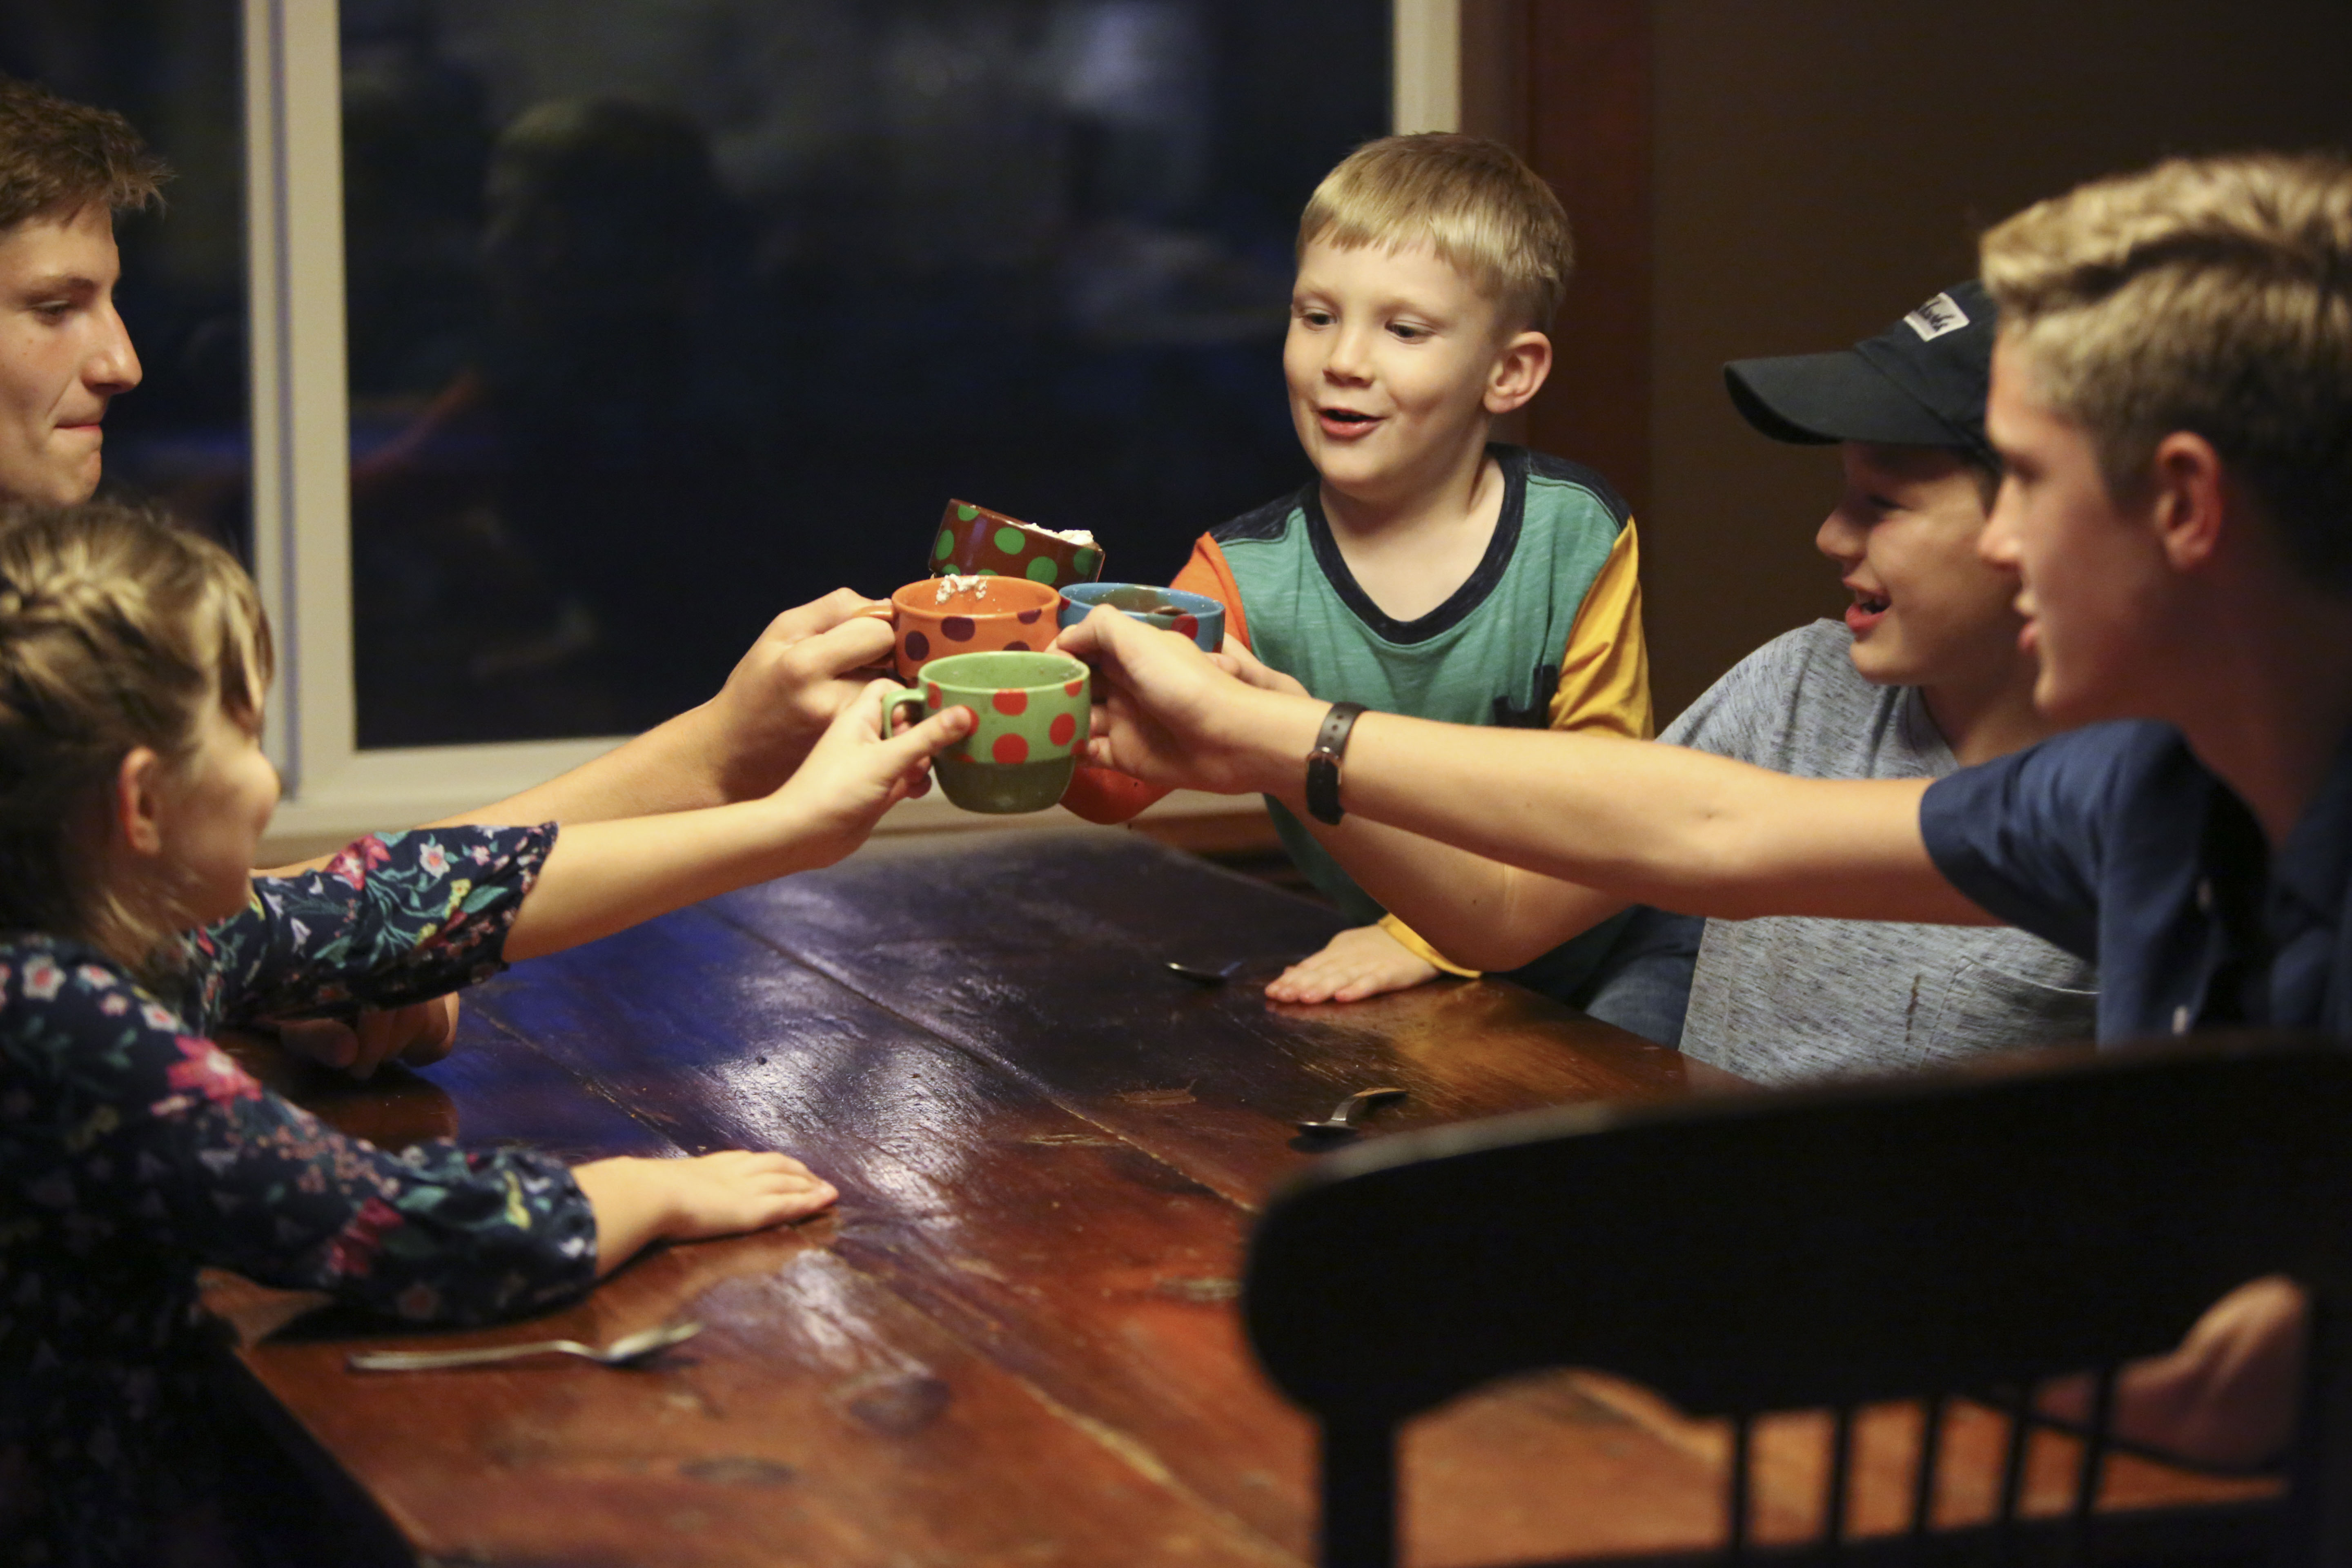 Emilia, Ben, Daniel, Tom and Jonathan Allen cheers with hot chocolate mugs after getting caught in a rain storm at home in Renton, Wash., on Friday, Sept. 14, 2018.